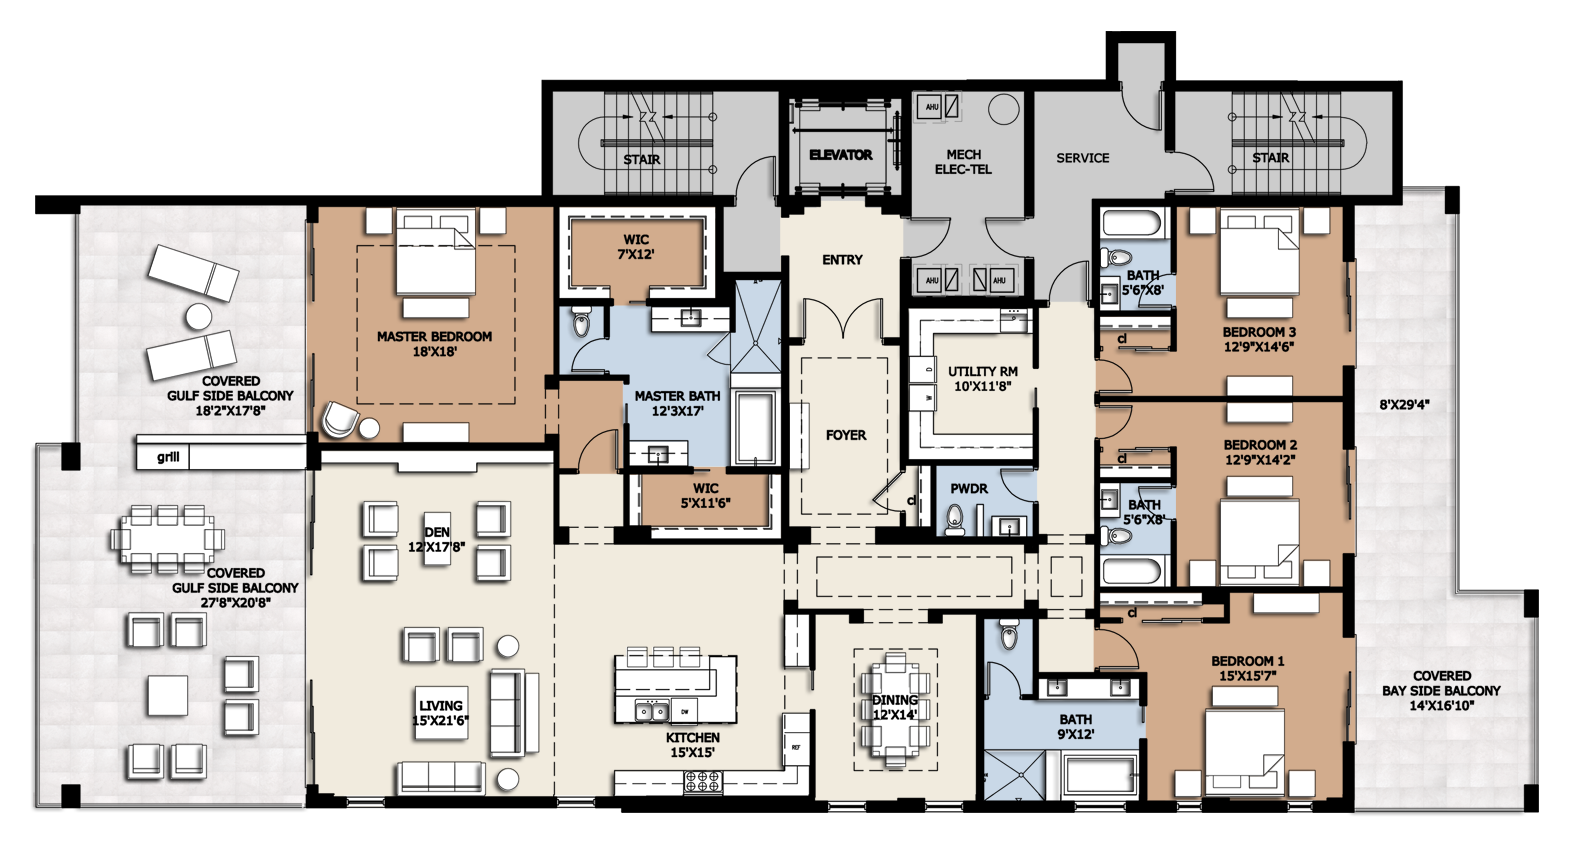 Superb Luxury Condominium Floor Plans #1: Residence C · Usa HouseLuxury CondoSite PlansFloor ...